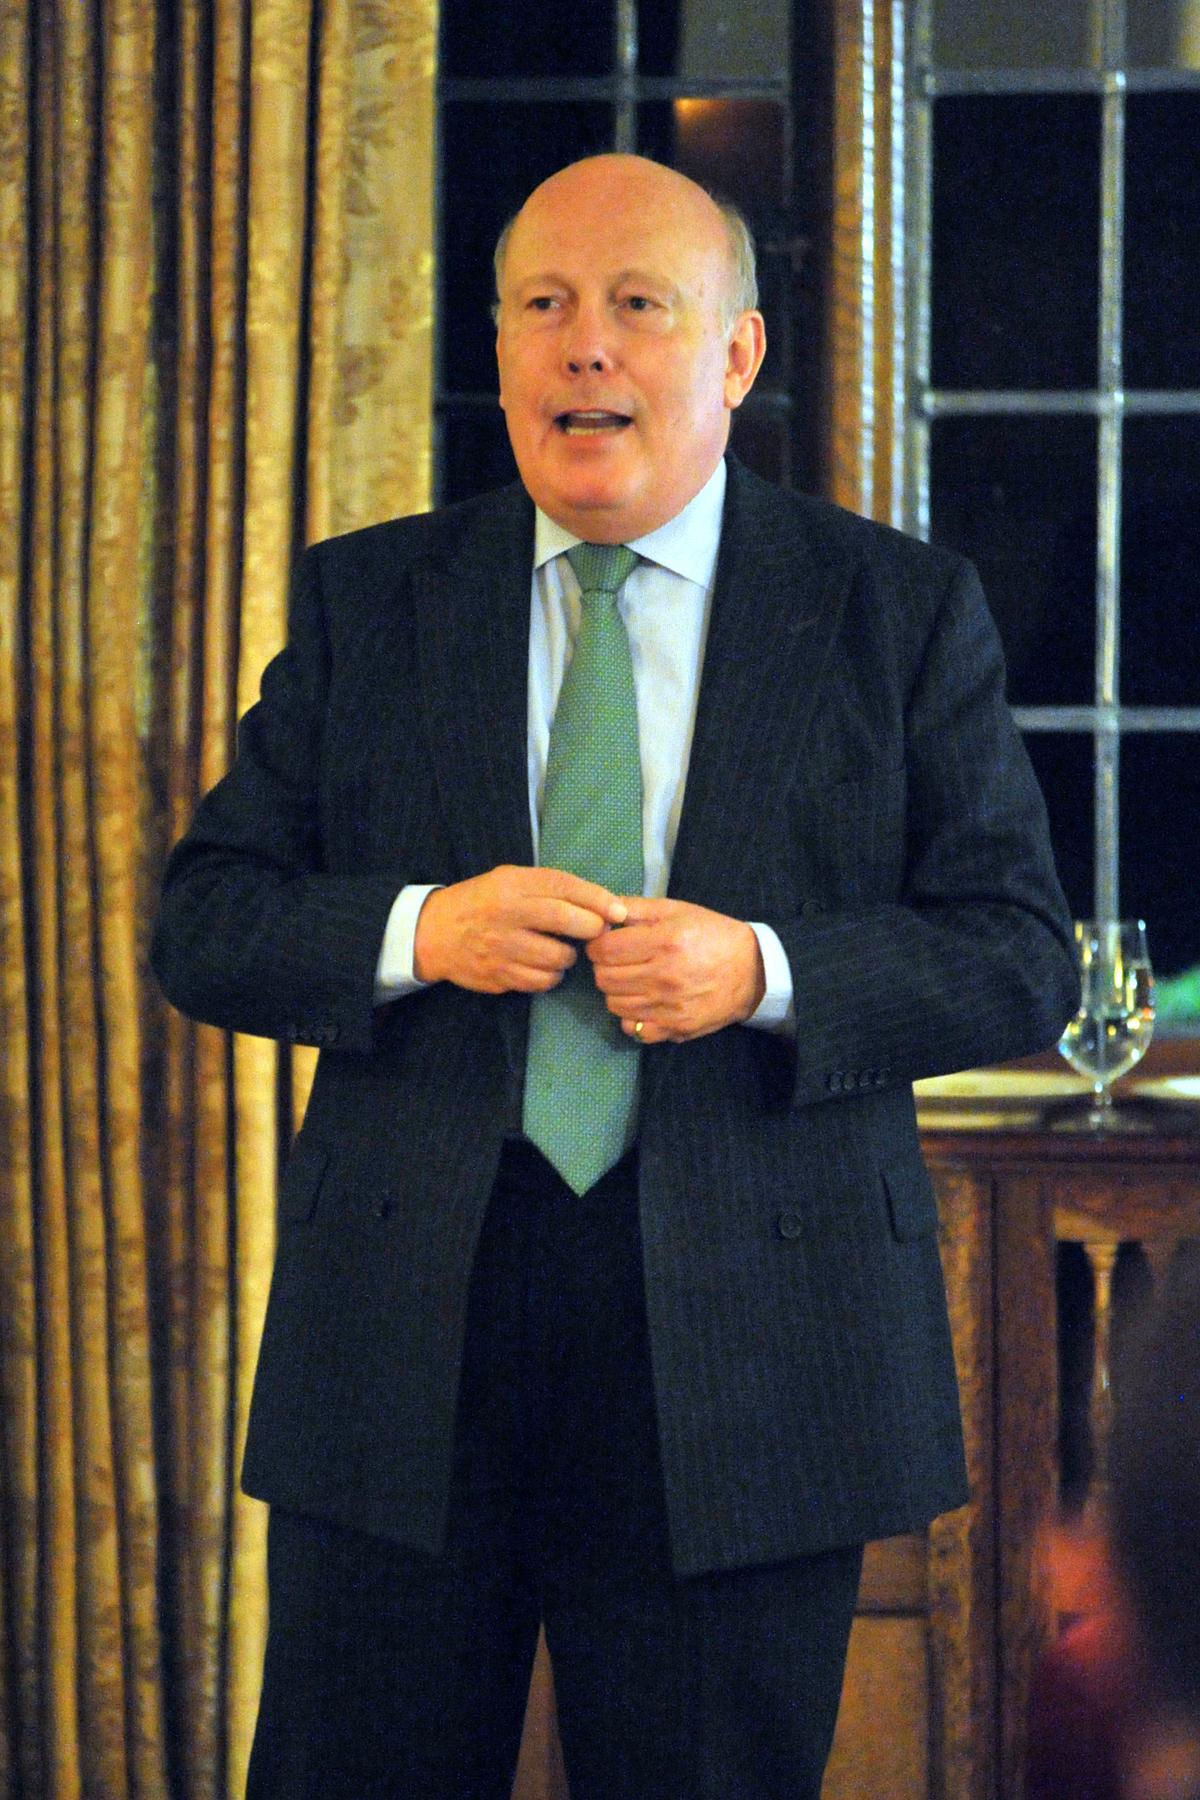 julian fellowes snobs epubjulian fellowes books, julian fellowes investigates, julian fellowes writer, julian fellowes snobs epub, julian fellowes interview, julian fellowes past imperfect, julian fellowes wife, julian fellowes imdb, julian fellowes net worth, julian fellowes belgravia, julian fellowes belgravia epub, julian fellowes house, julian fellowes belgravia book, julian fellowes, julian fellowes the gilded age, julian fellowes downton abbey, julian fellowes movies and tv shows, julian fellowes romeo and juliet, julian fellowes doctor thorne, julian fellowes movies